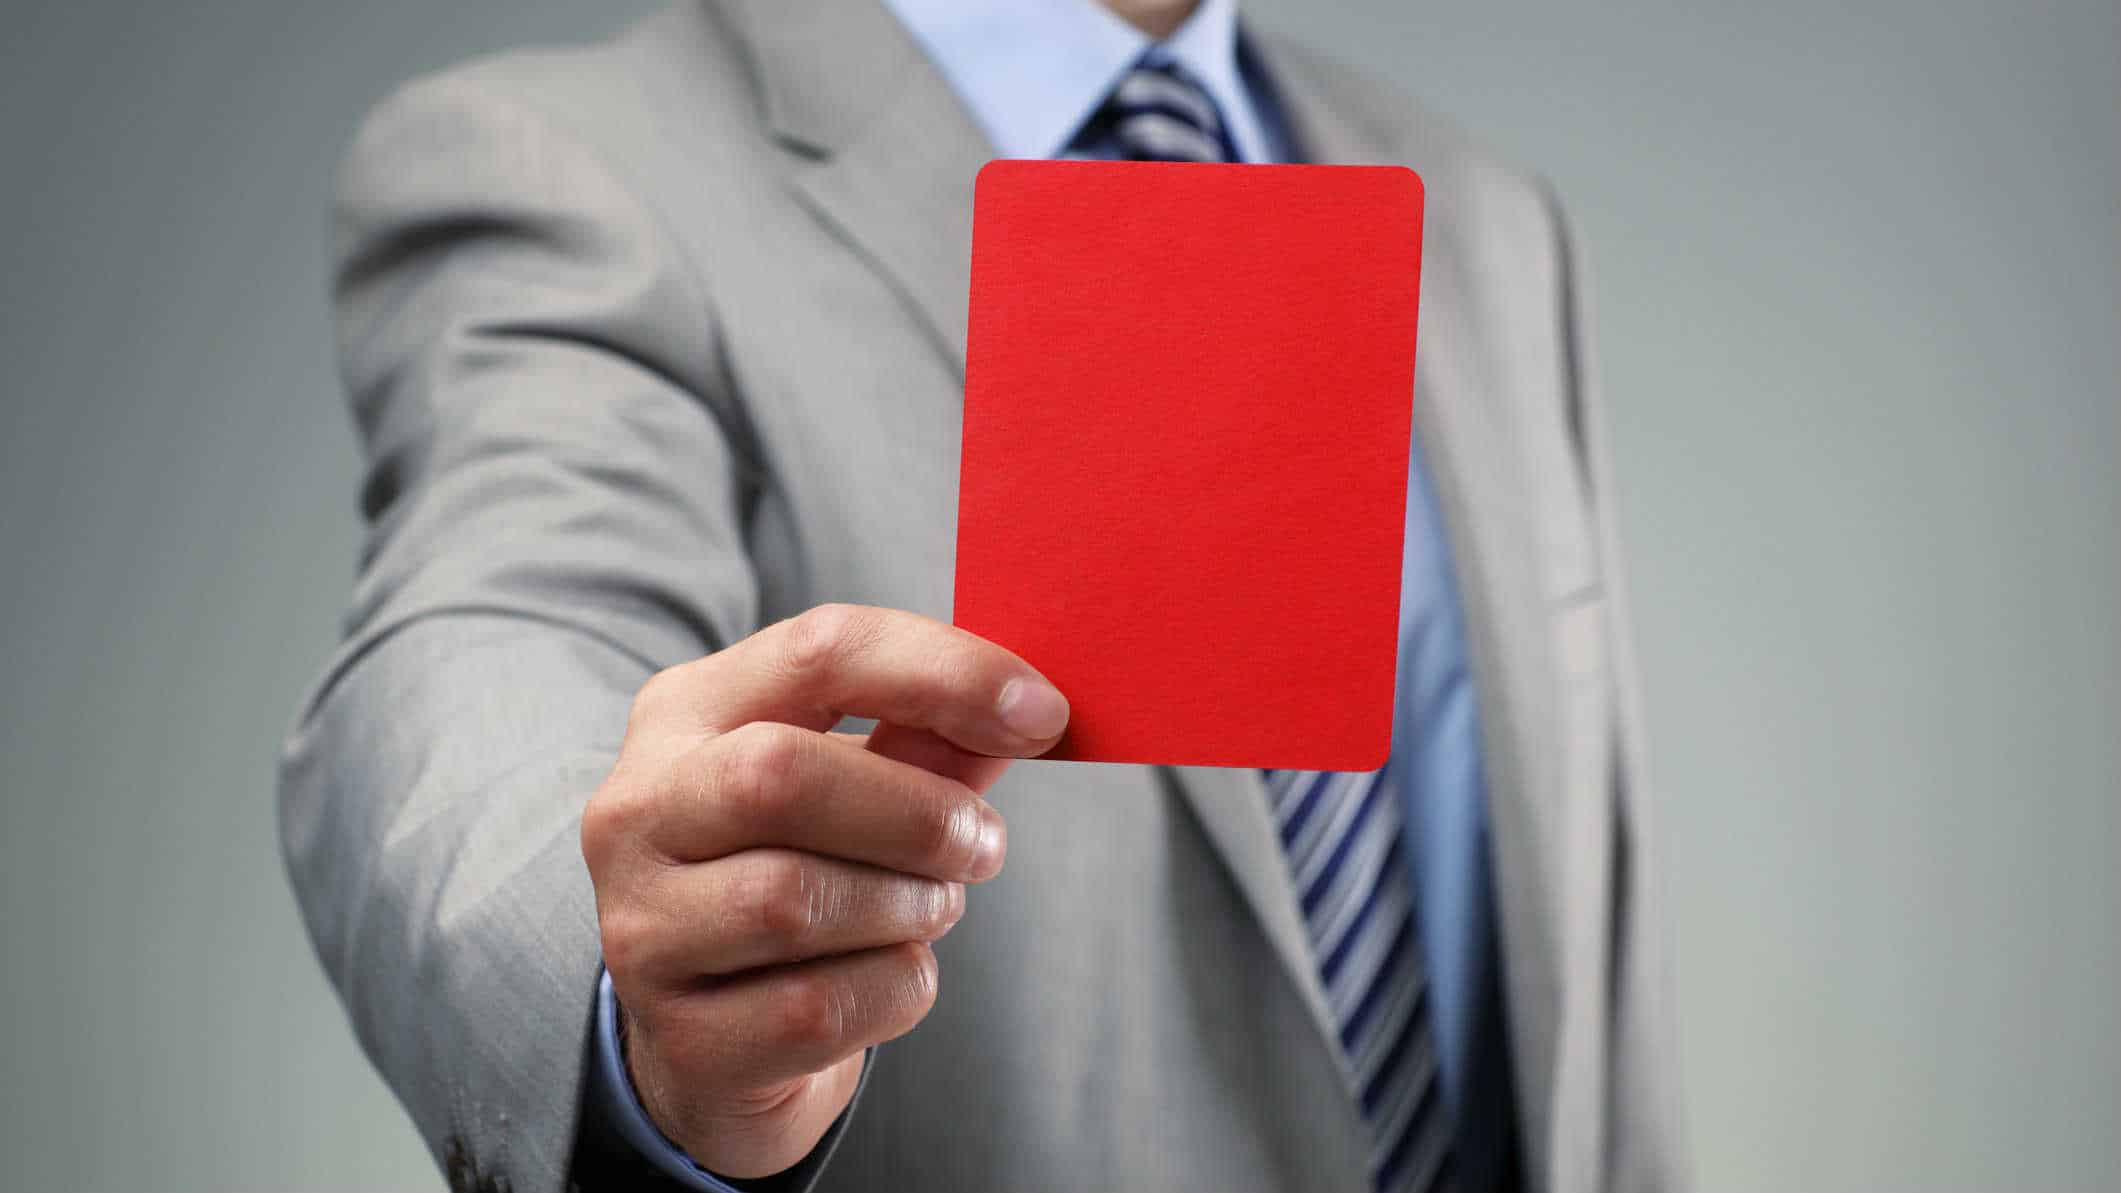 punished, punishment, red card